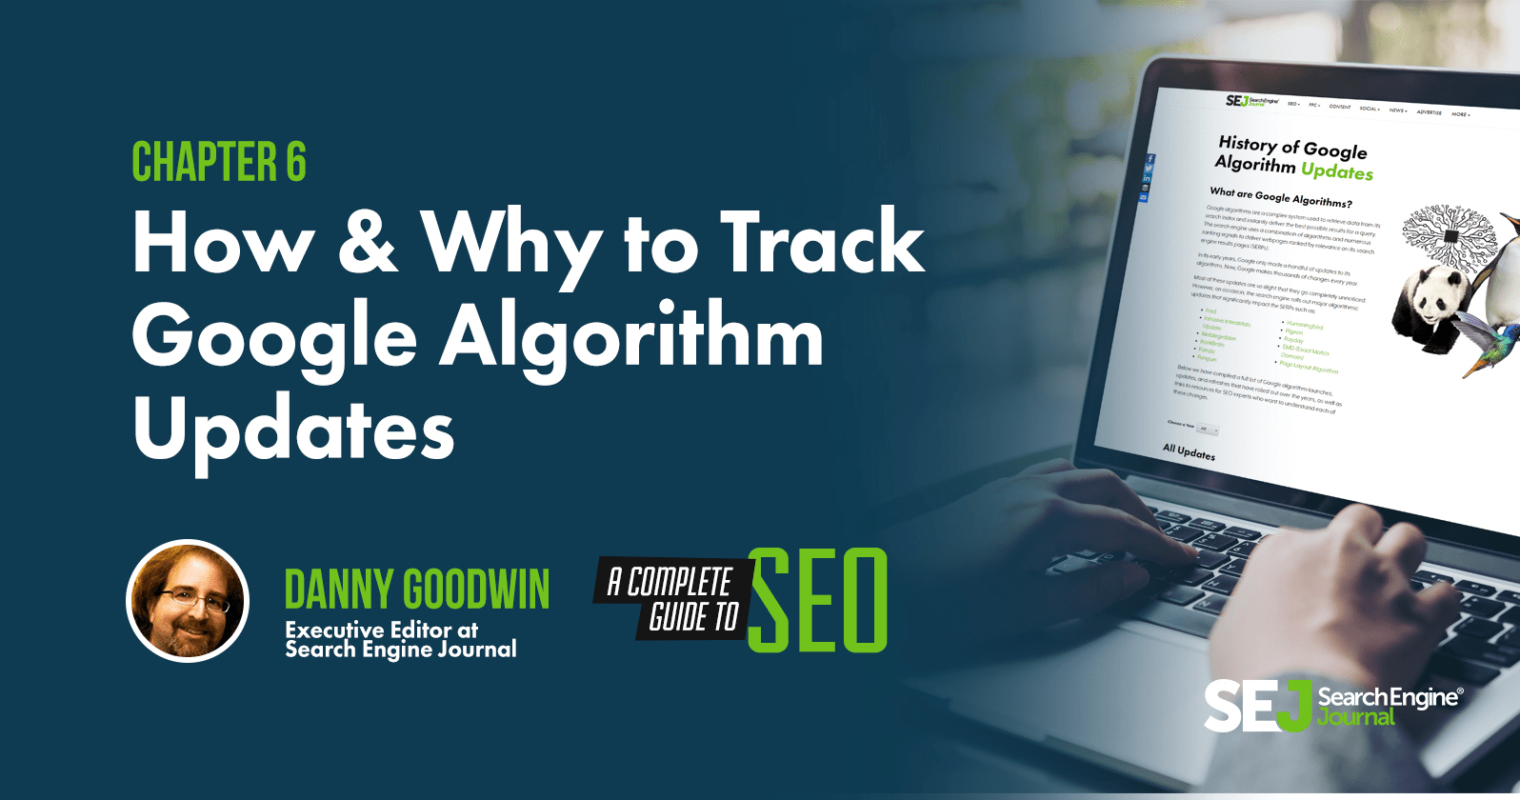 Why & How to Track Google Algorithm Updates